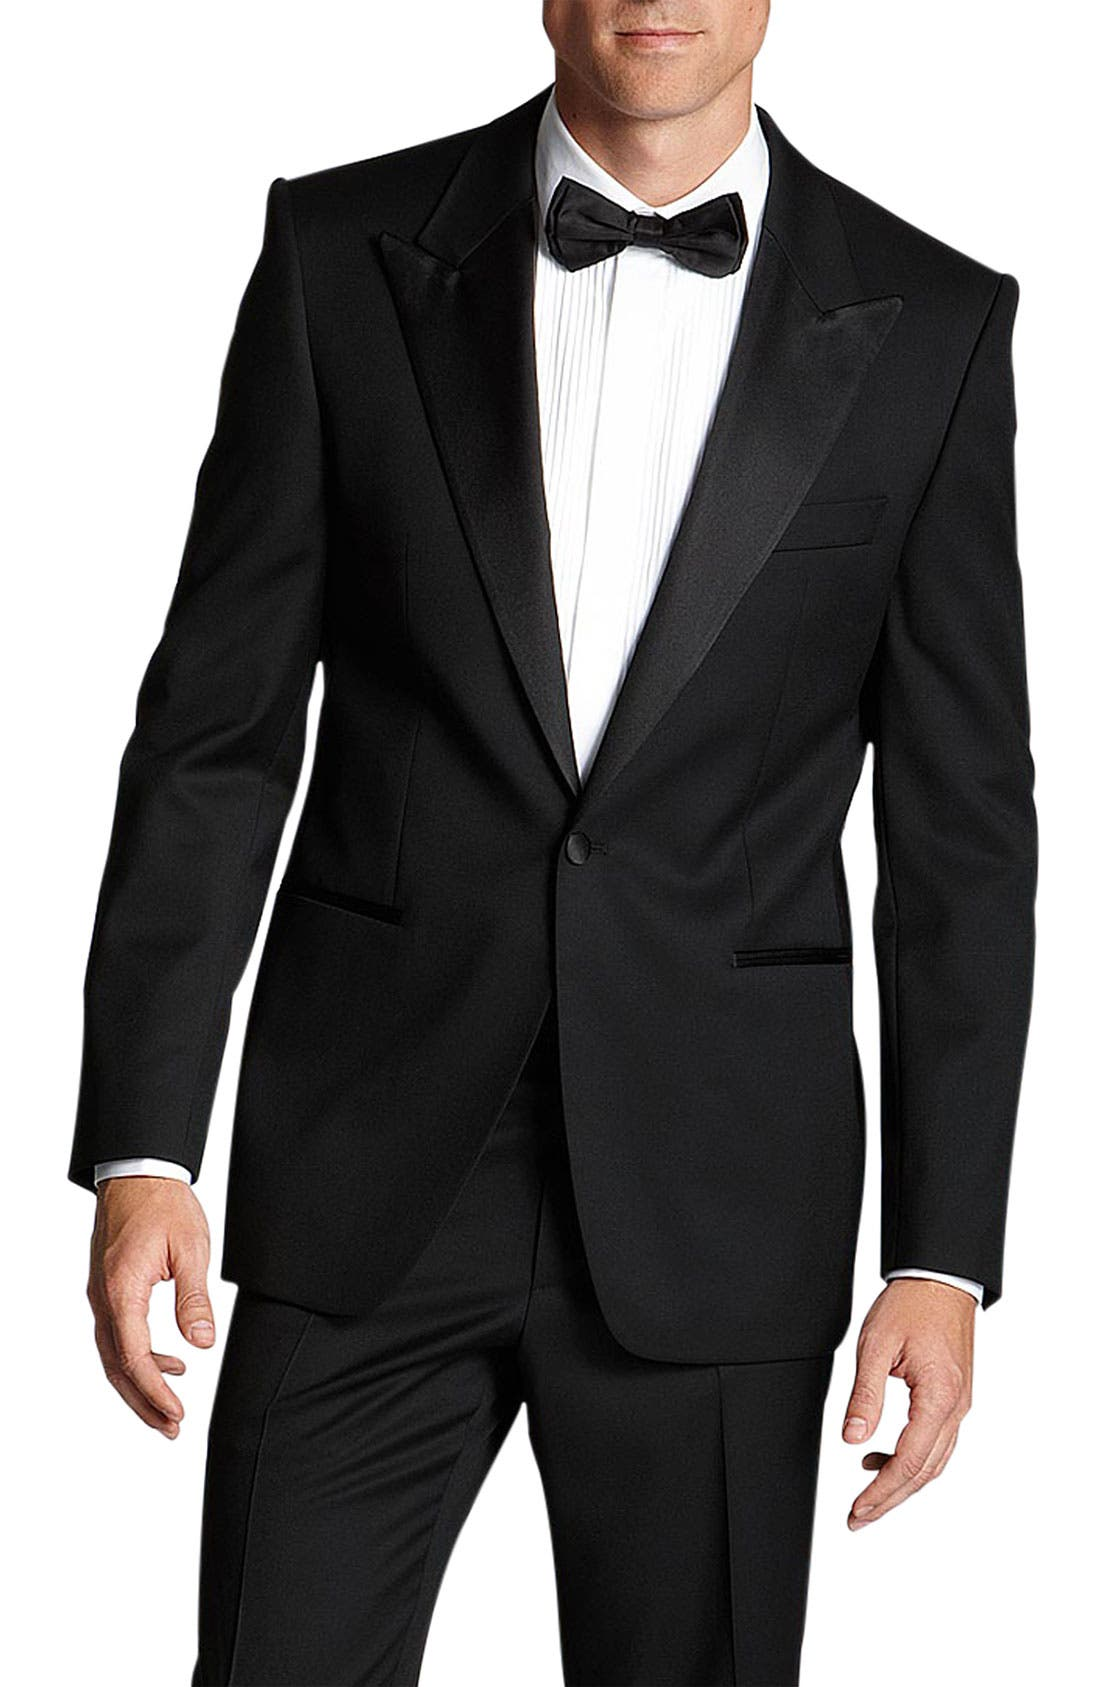 Alternate Image 1 Selected - BOSS HUGO BOSS 'Grant' Classic Fit Tuxedo (Free Next Day Shipping)